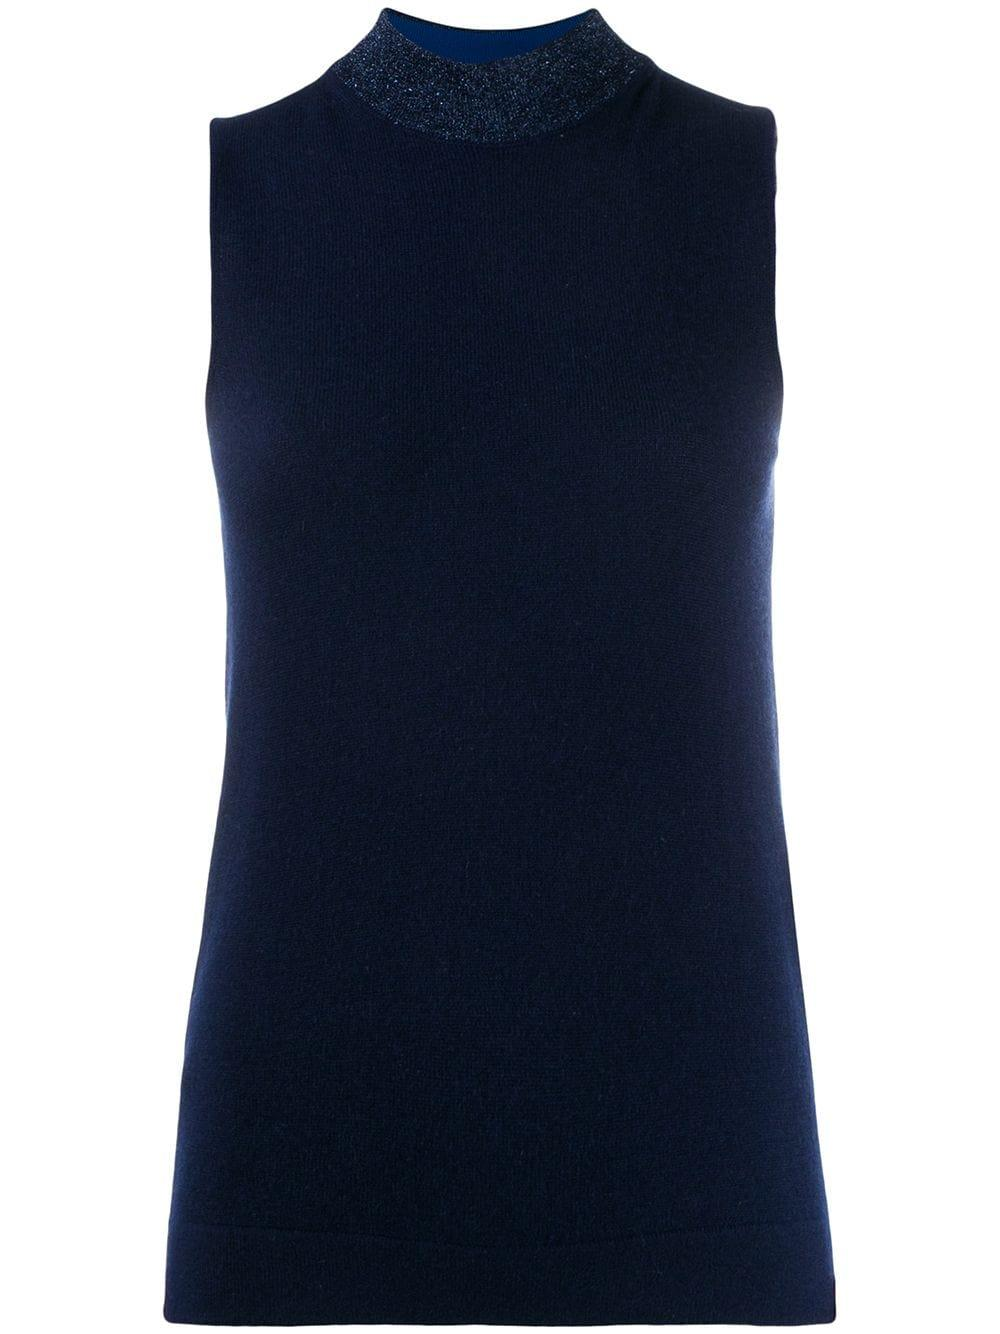 Sleeve Less Mock Neck Cashmere Top